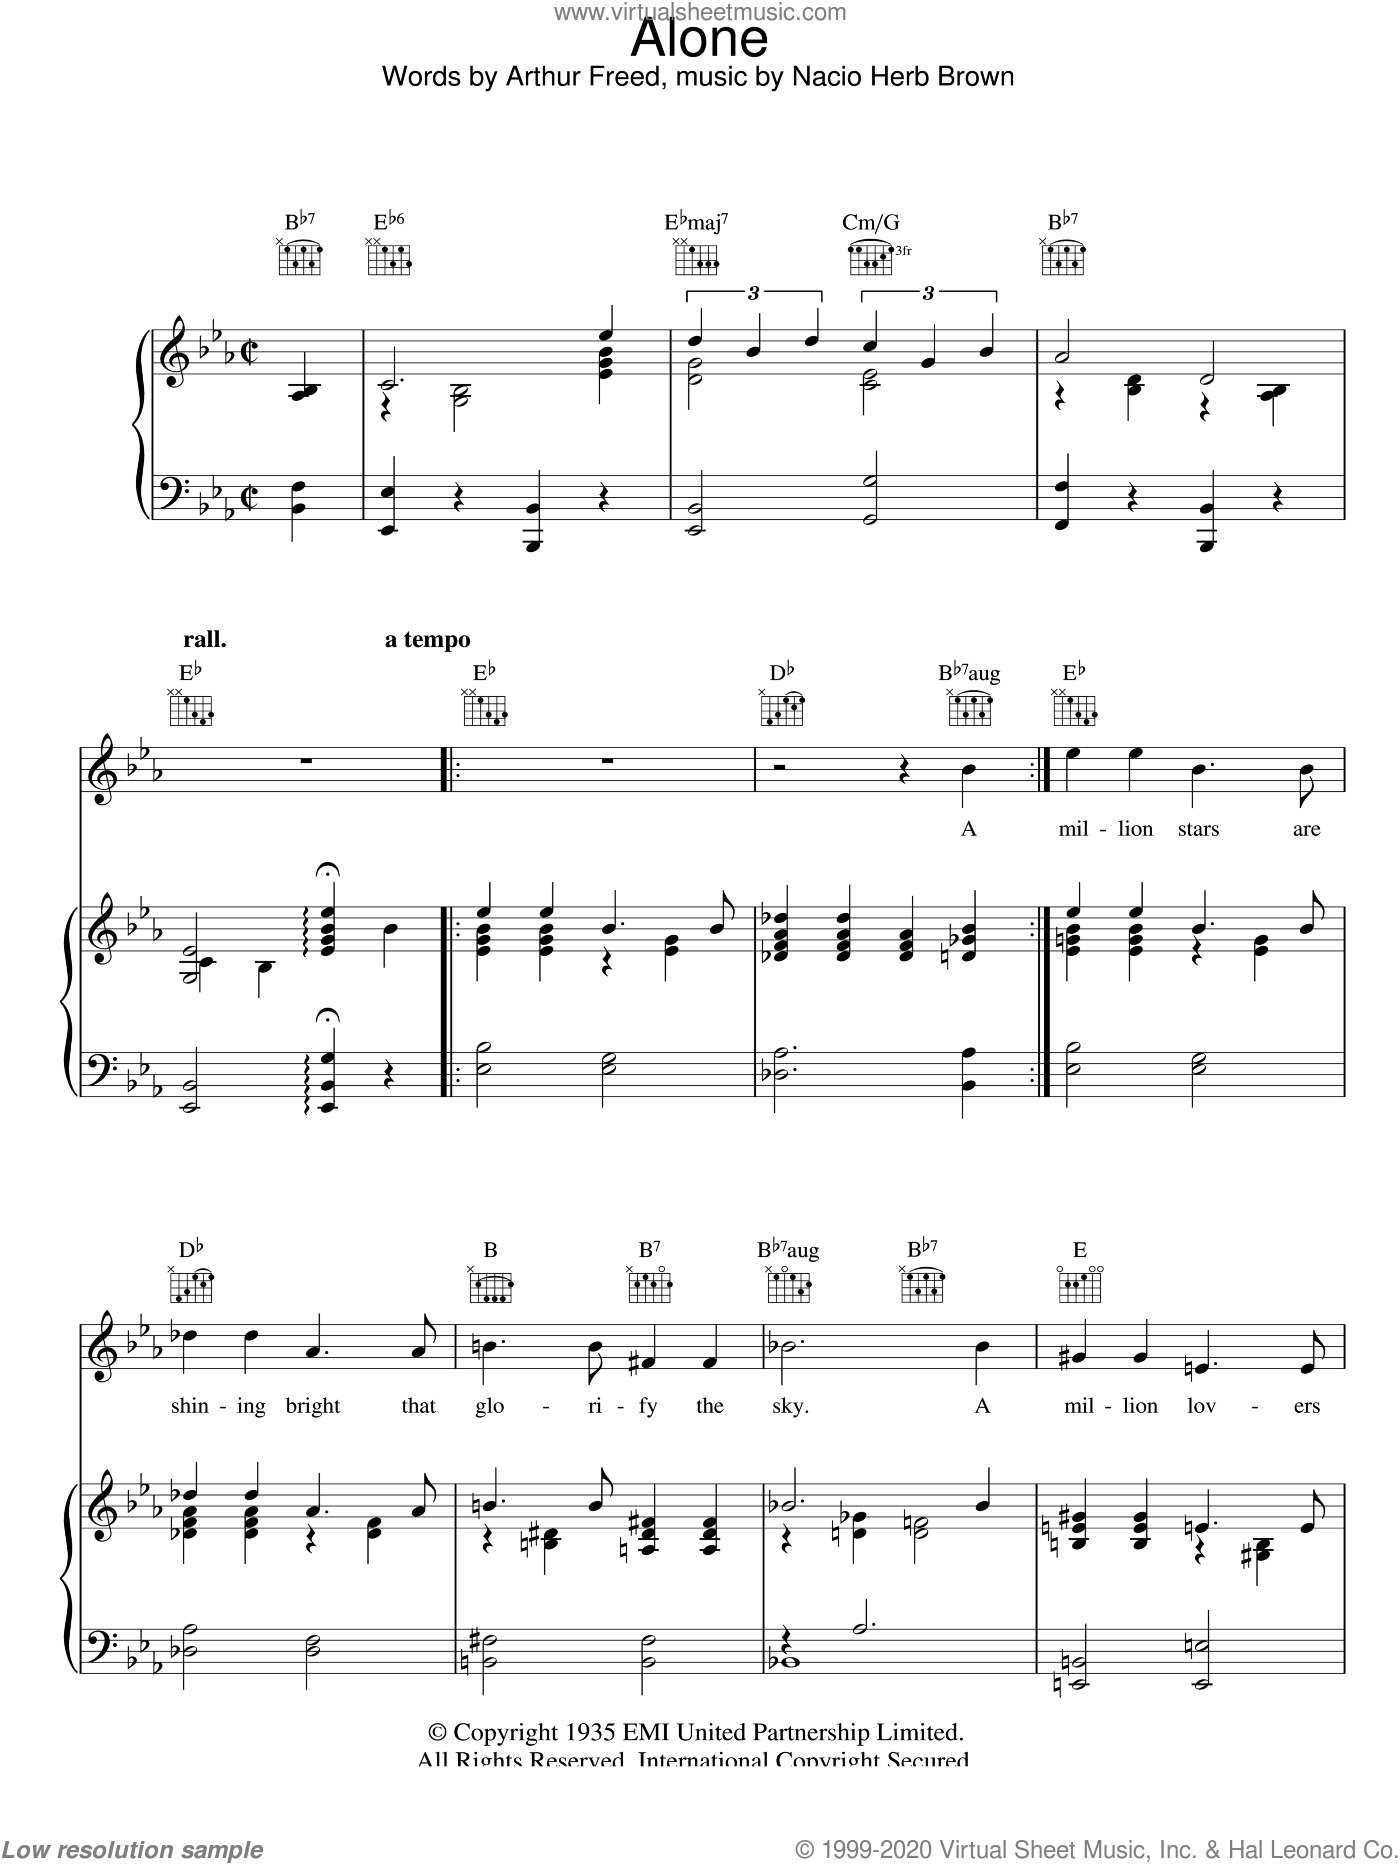 Alone sheet music for voice, piano or guitar by Nacio Herb Brown and Arthur Freed, intermediate skill level